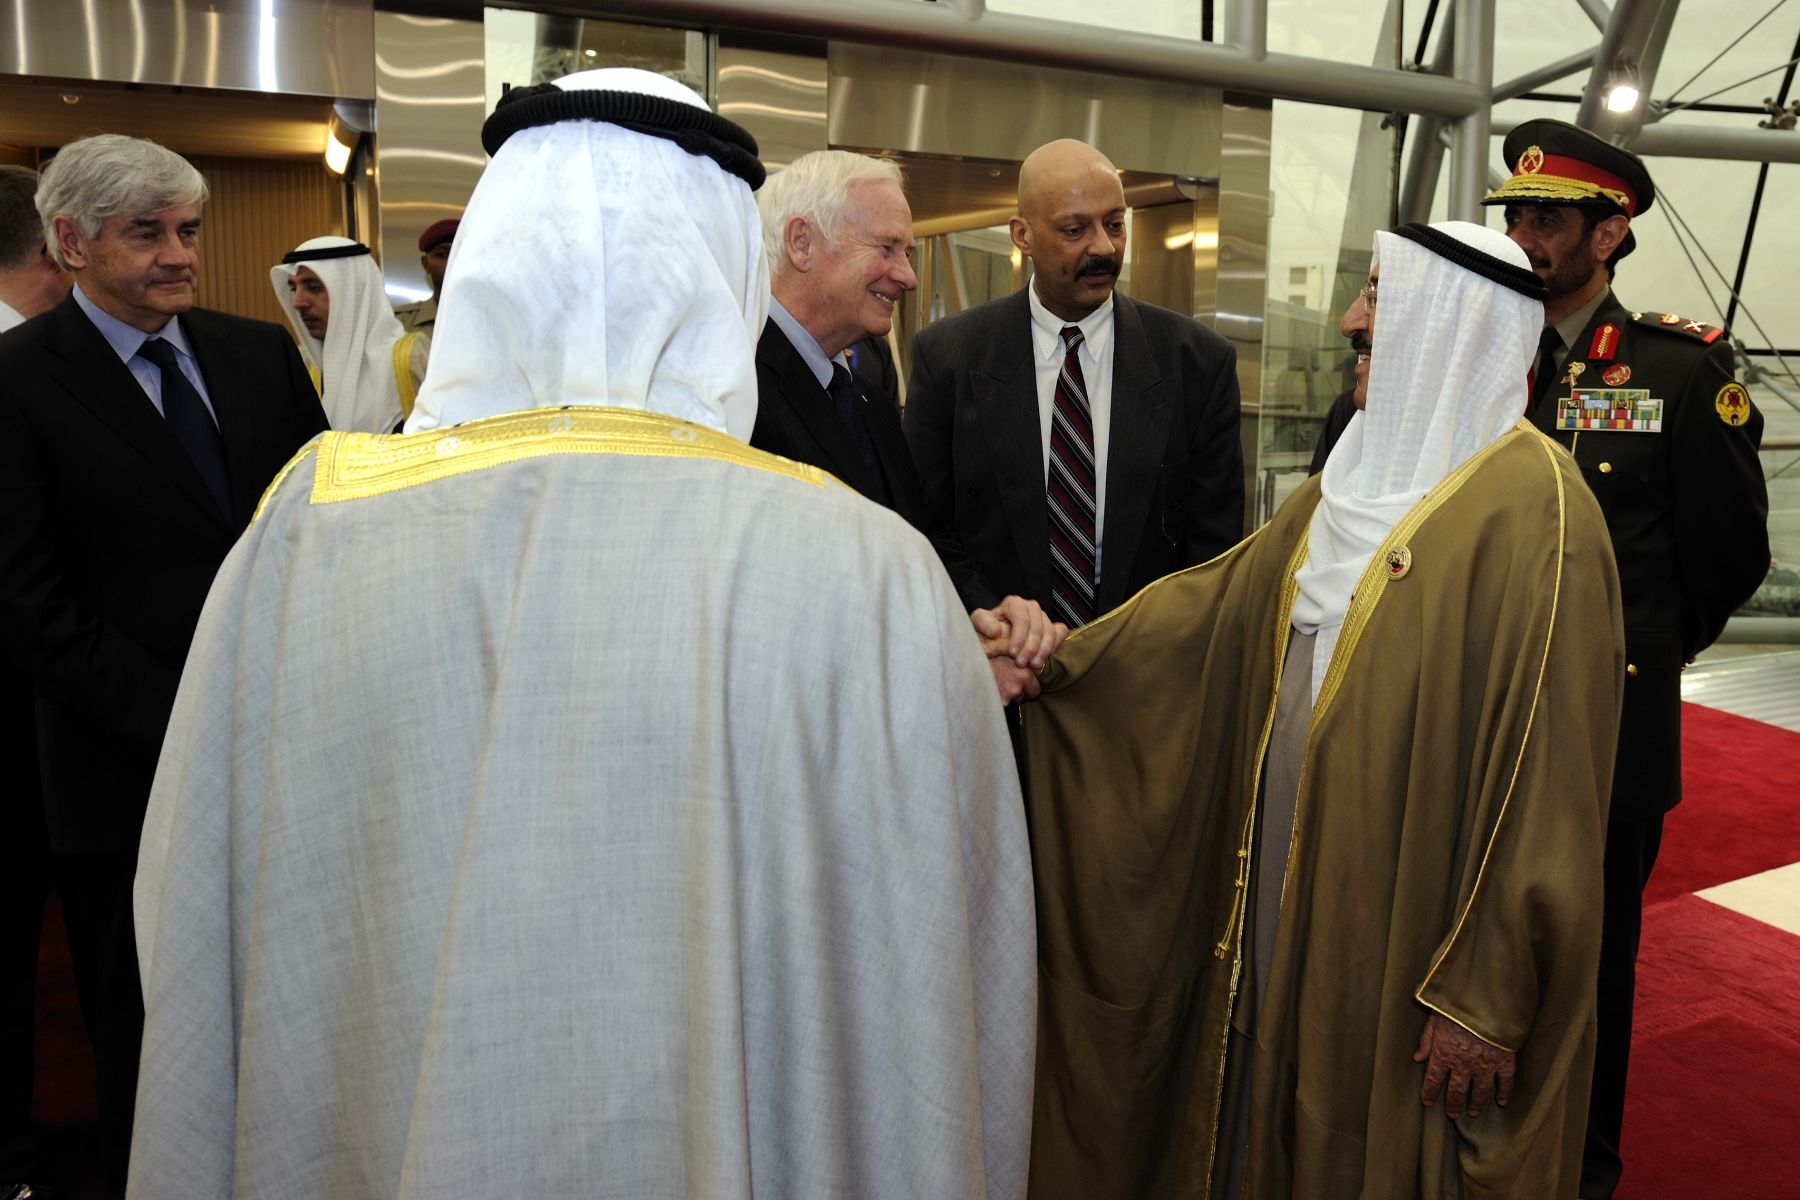 The Governor General arrived at the Kuwait International Aiport on February 25, 2011, and was greeted by His Highness Sheikh Sabah Al-Ahmad Al-Jaber Al-Sabah, the Amir of Kuwait.